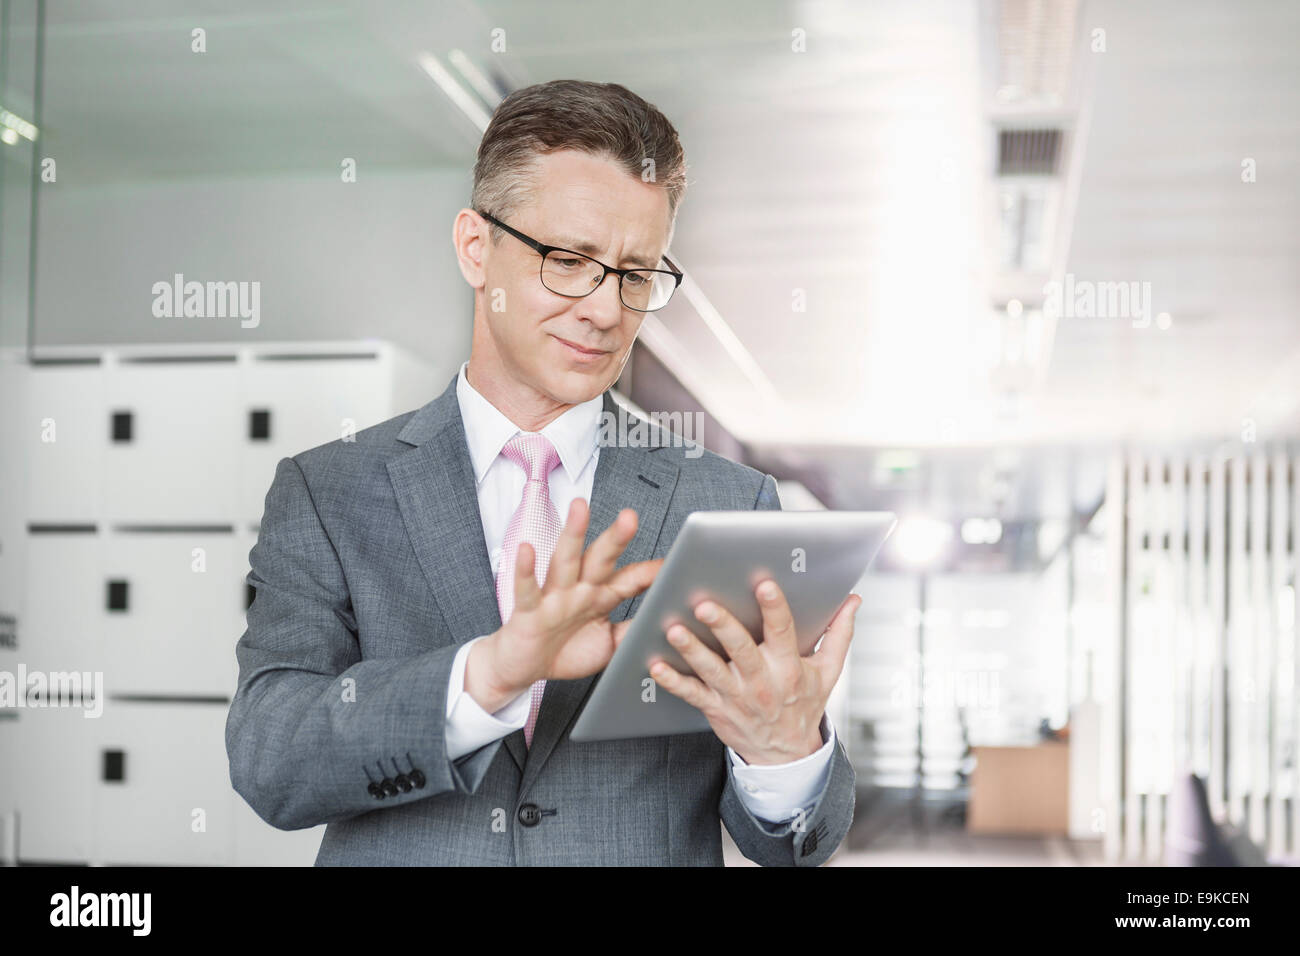 Young businesswoman using copy machine in office - Stock Image